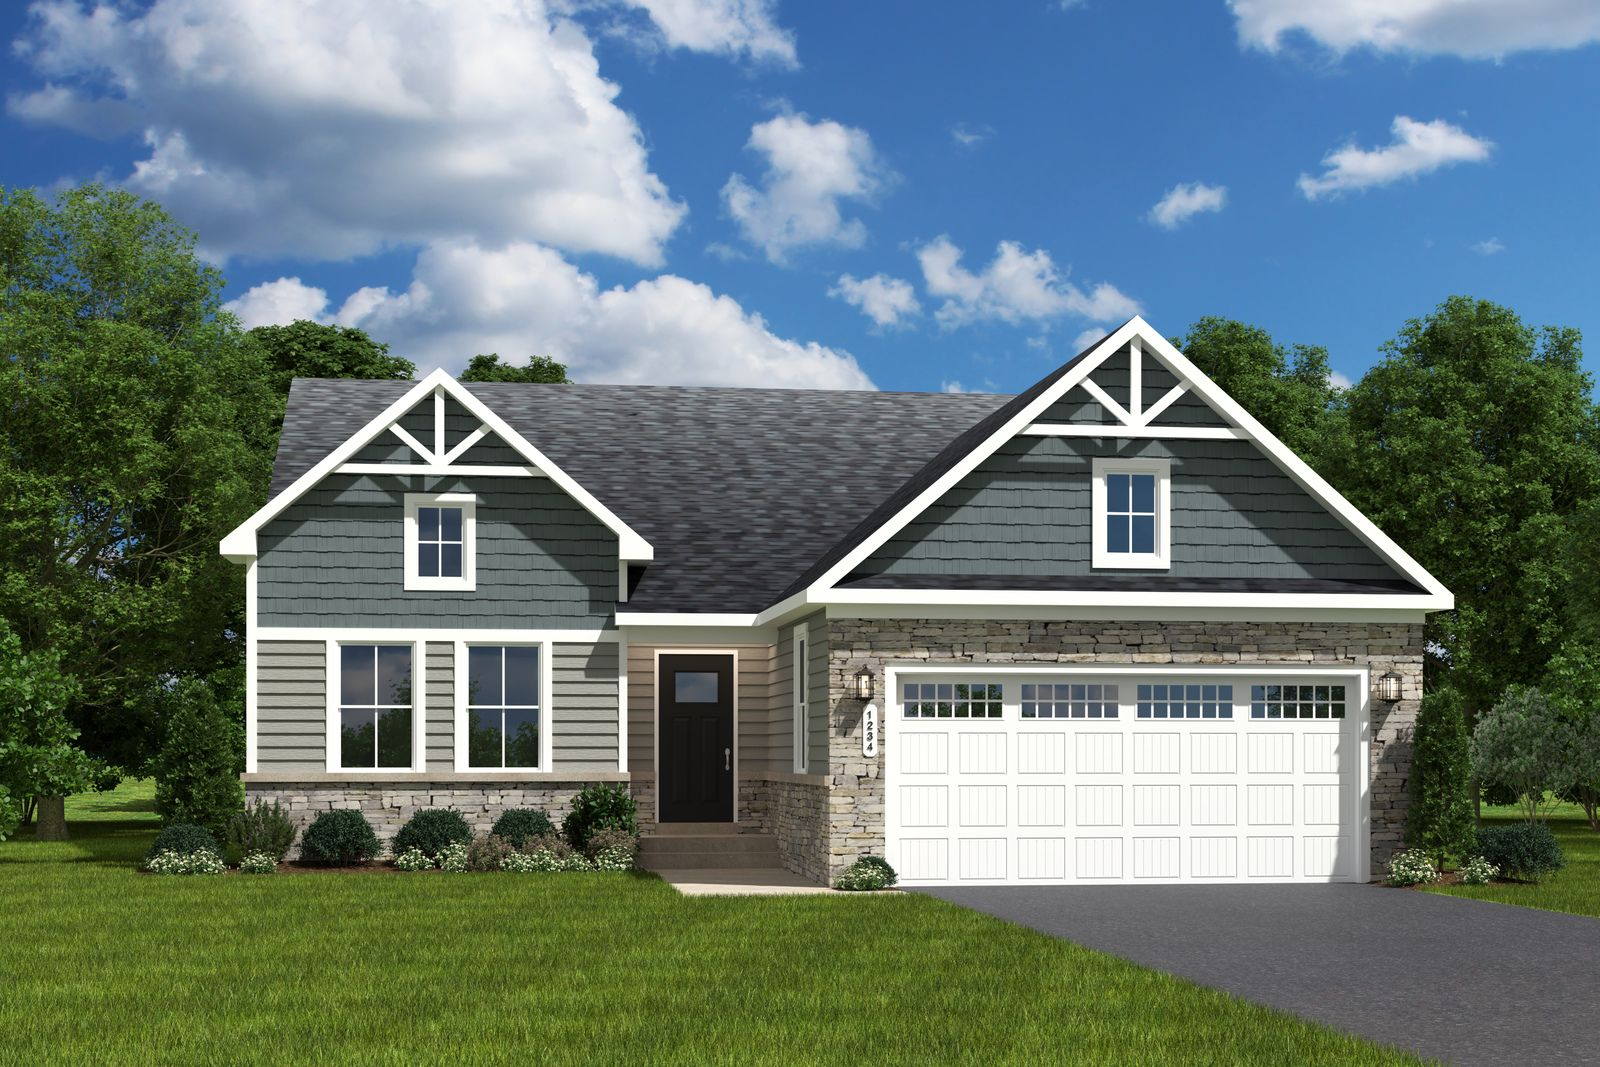 Welcome Home to Maplecrest:Monroeville's lowest priced new ranch home community built with lawn maintenance included. Conveniently located to I-376, Rt. 22, Rt. 48, and I-76.. Schedule your visit to learn more.